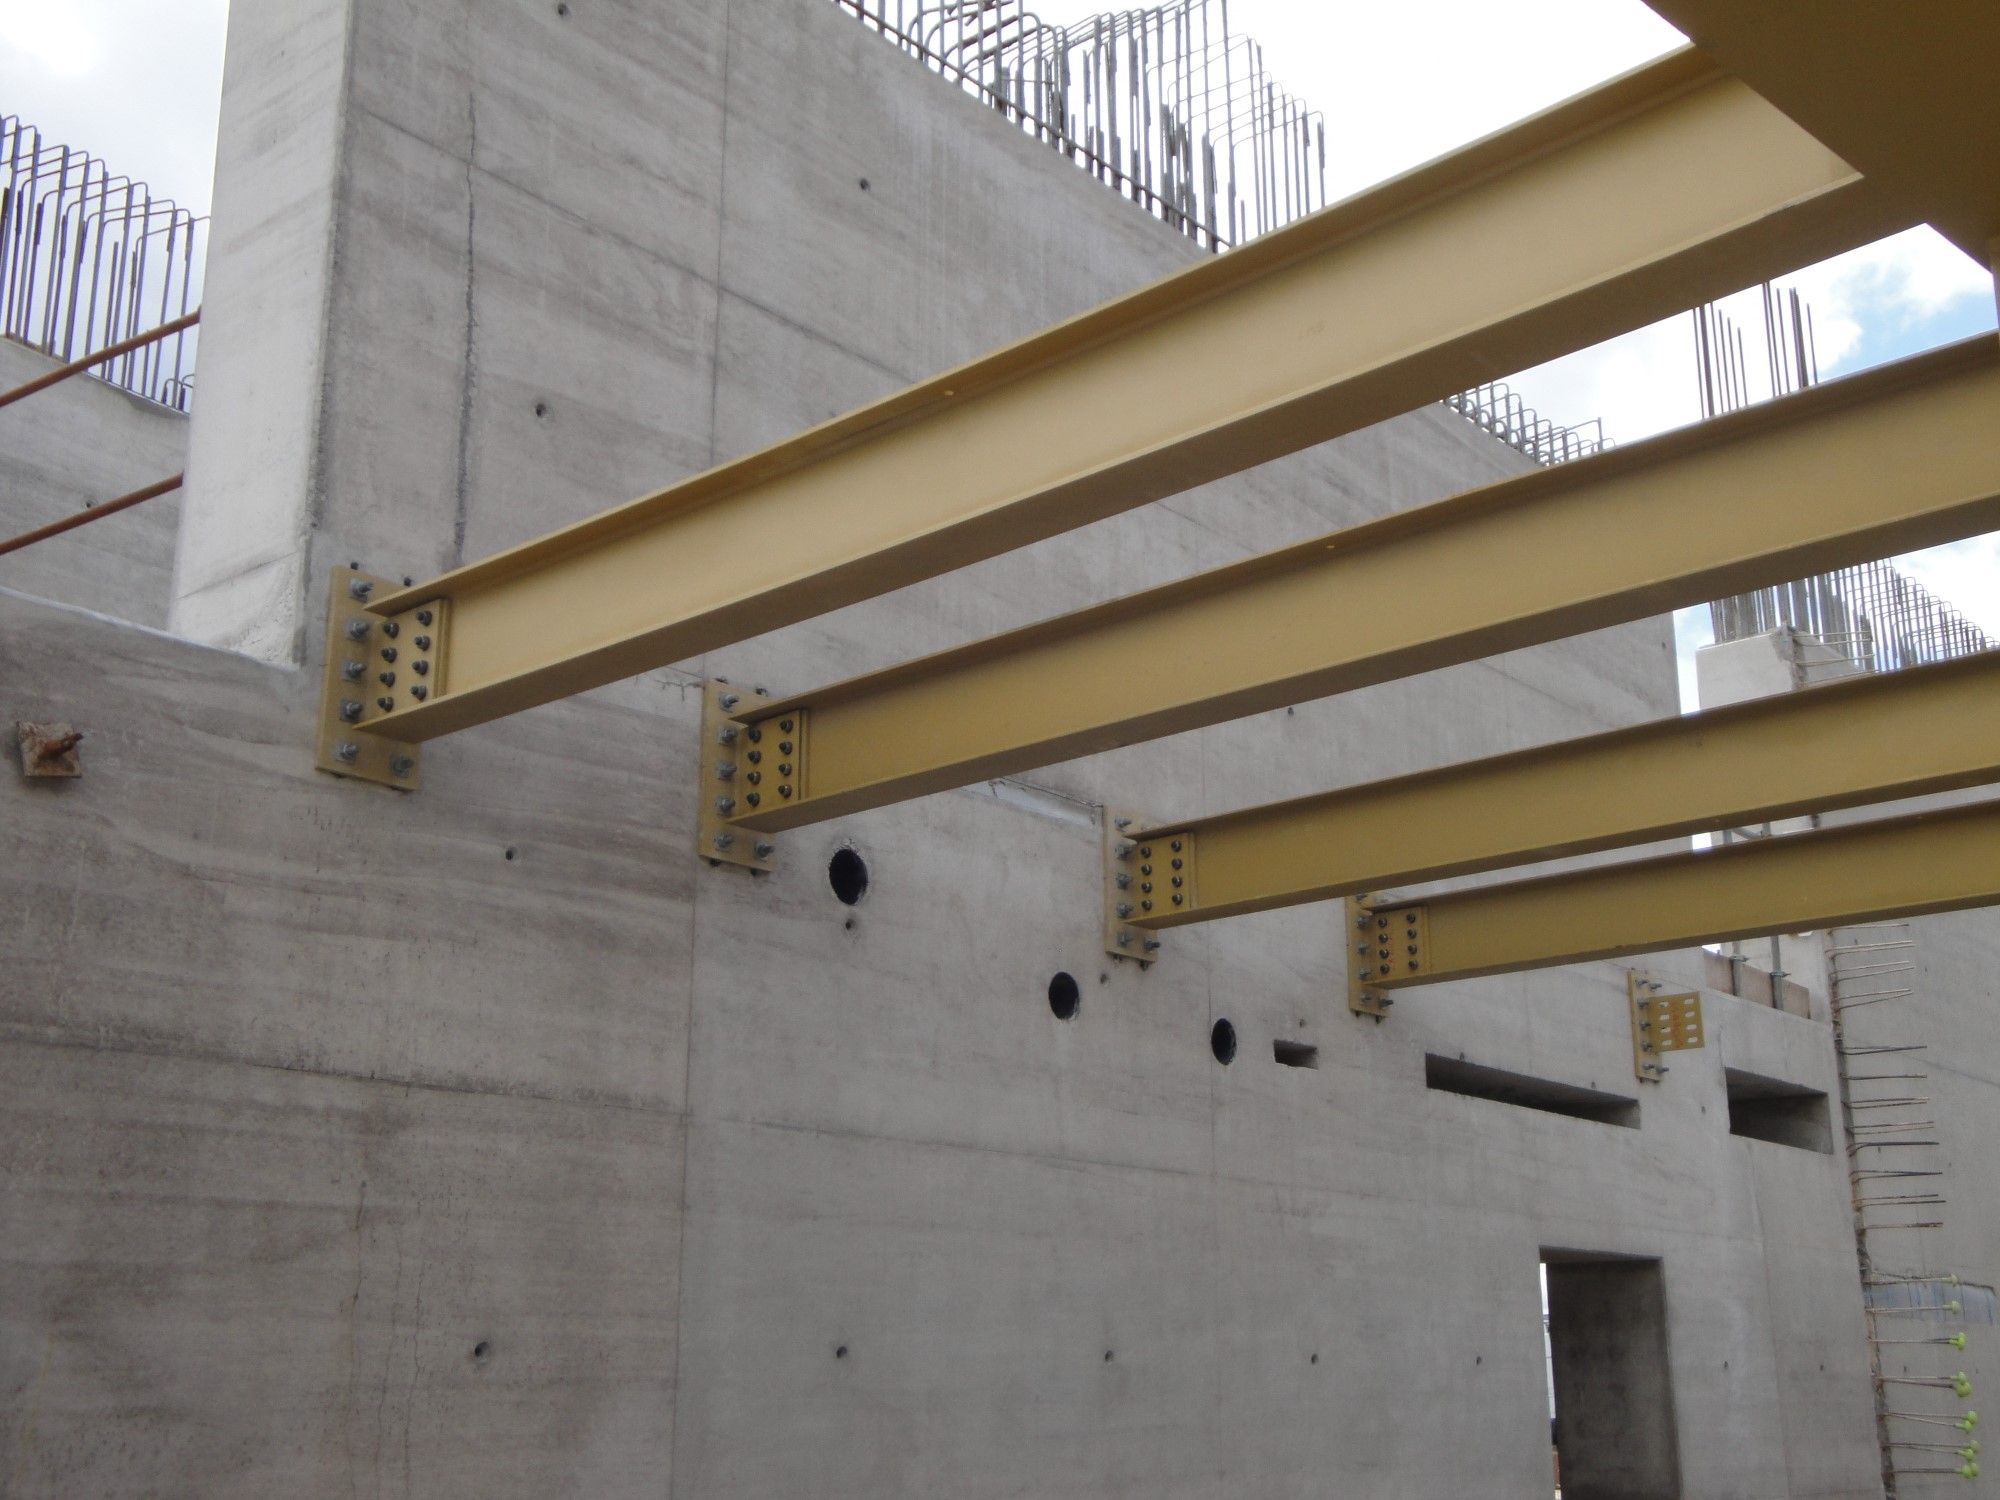 Steel And Concrete Homes Image Result For Concrete Building With Steel Structure